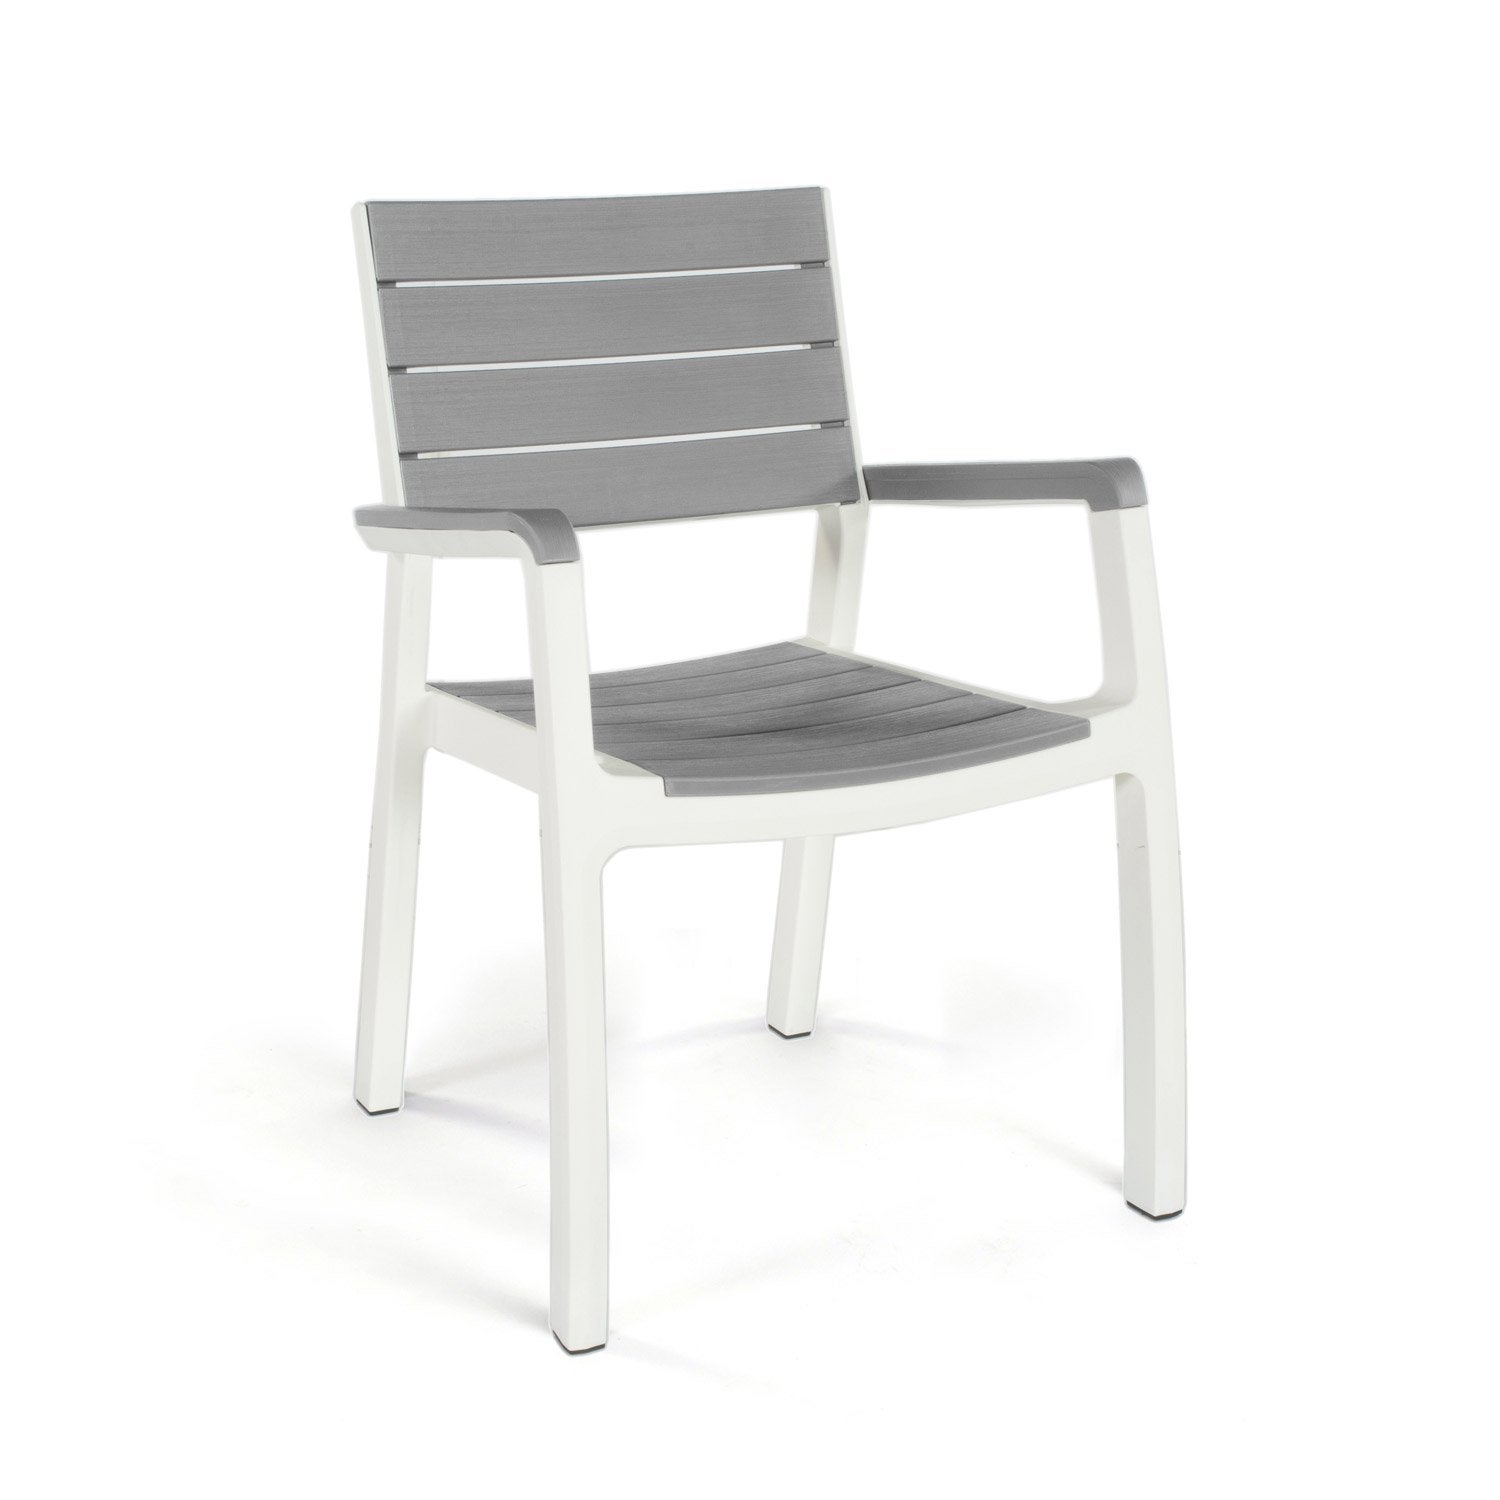 fauteuil de jardin en r sine harmony gris blanc leroy merlin. Black Bedroom Furniture Sets. Home Design Ideas